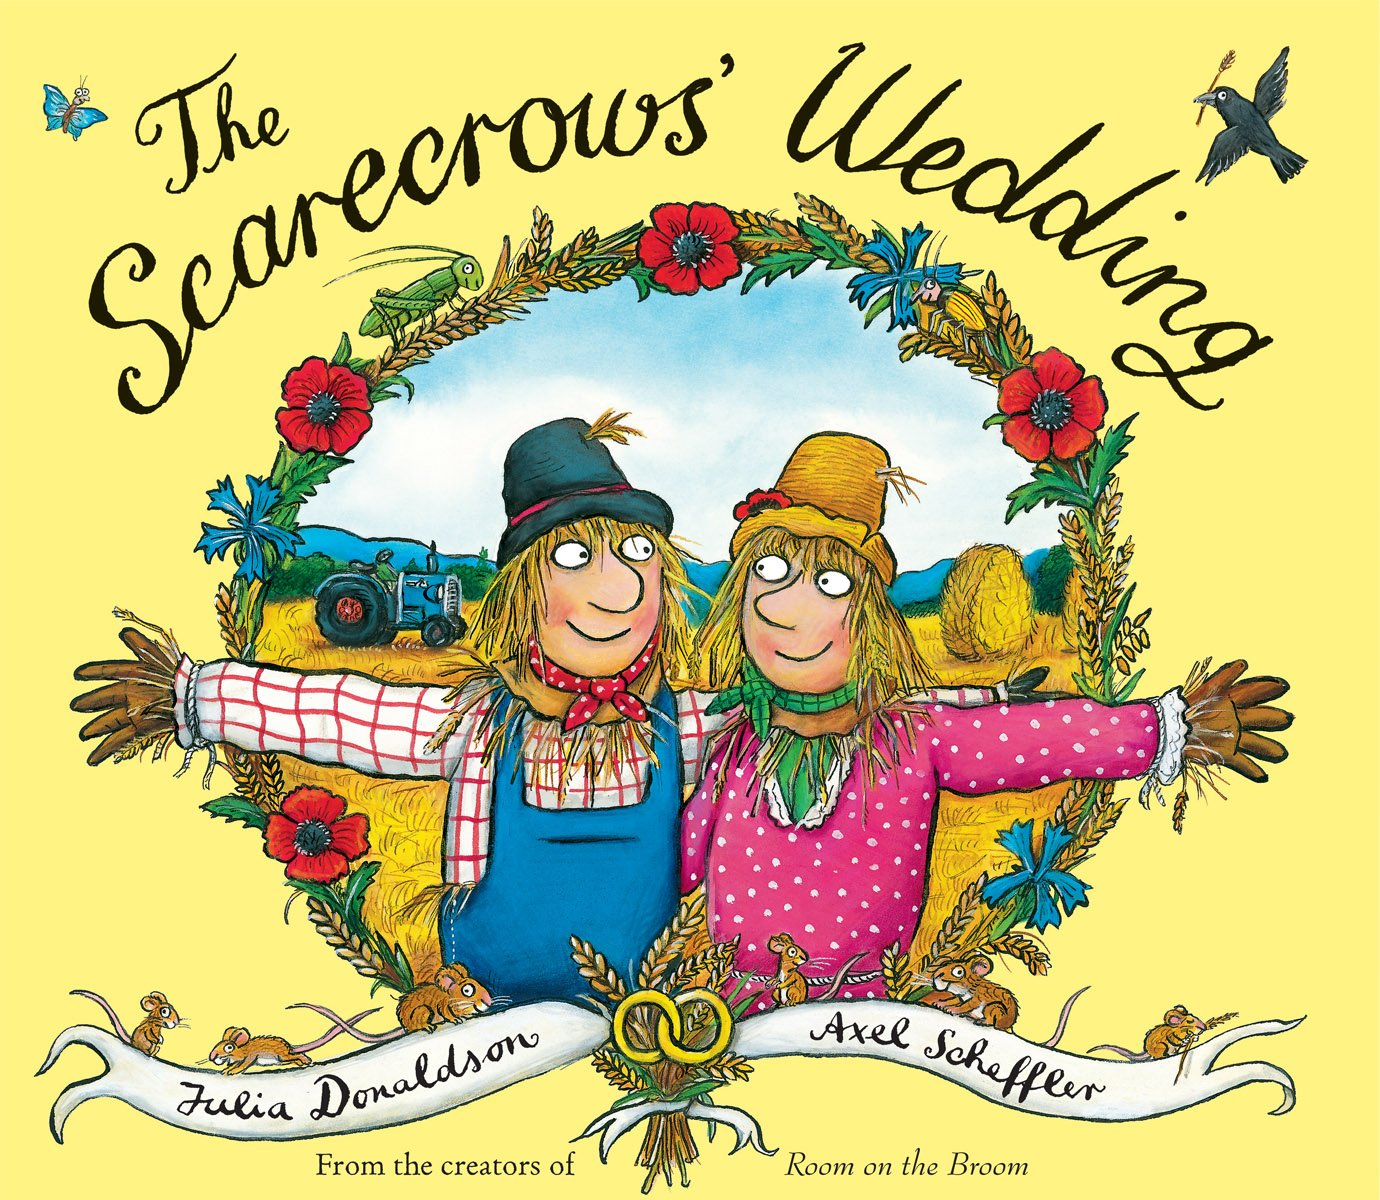 Image result for the scarecrows wedding